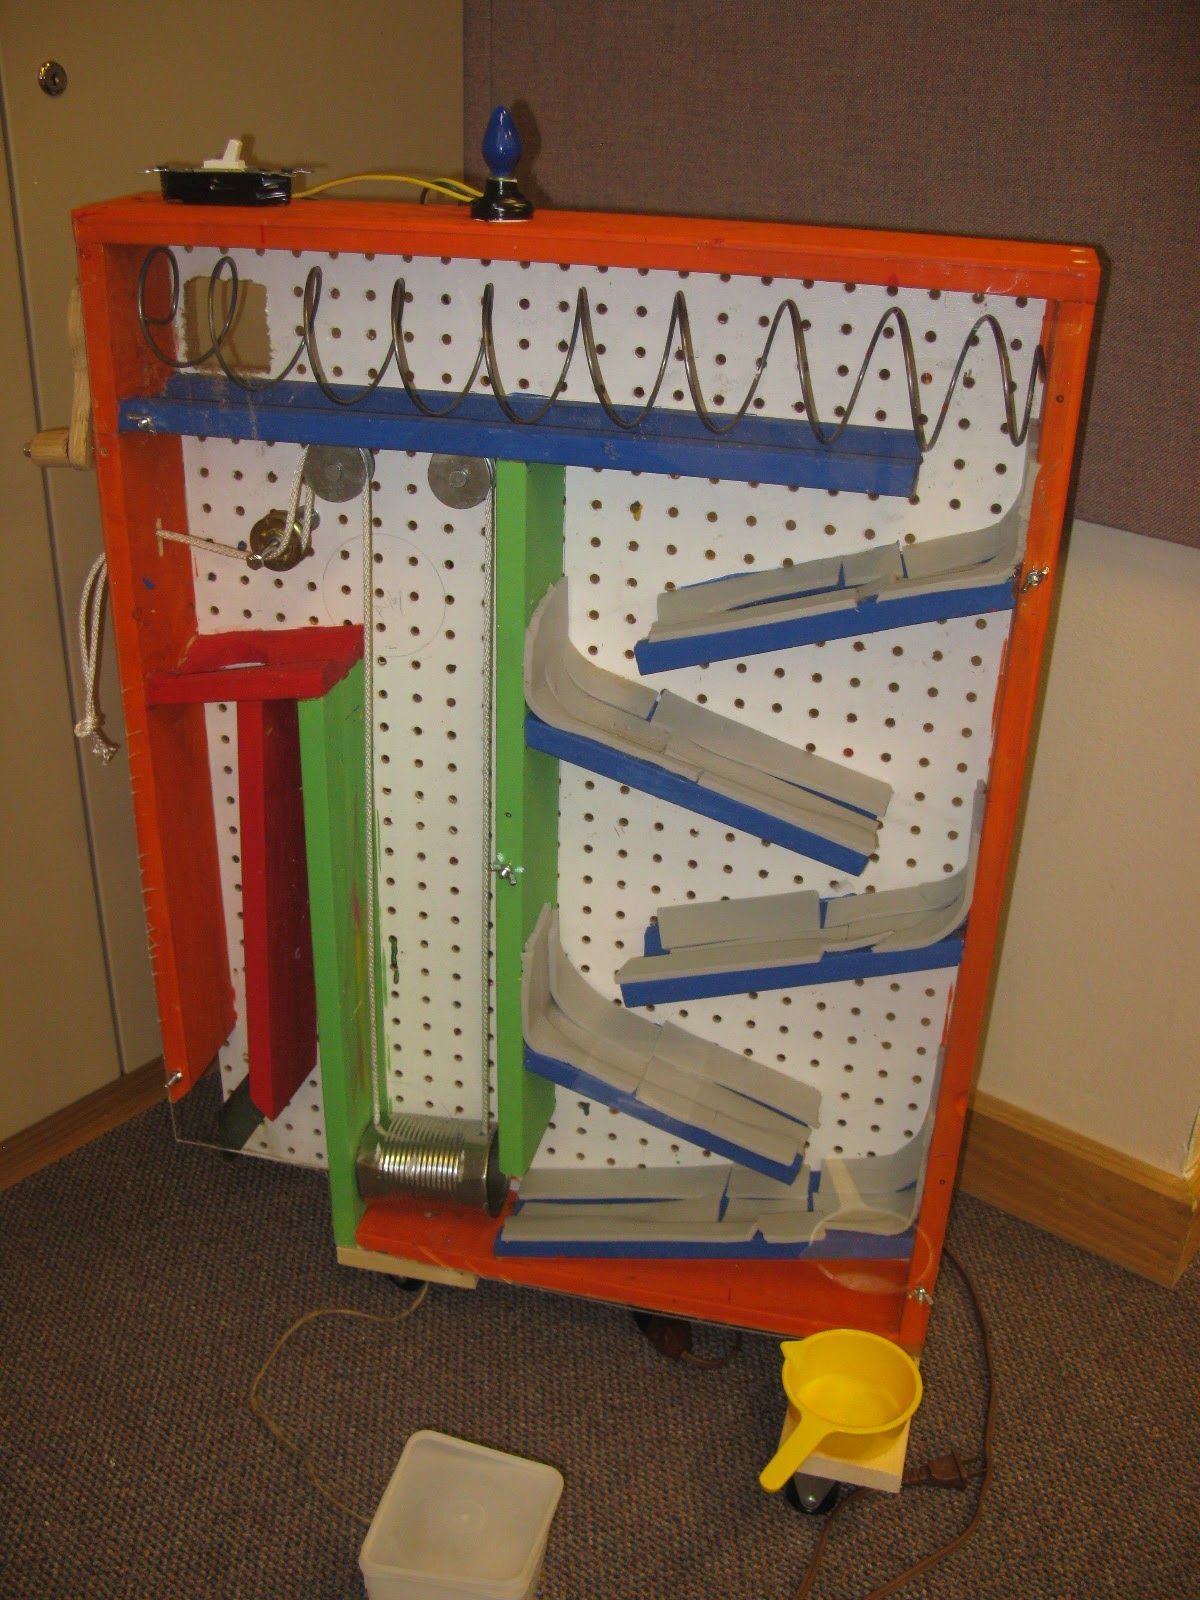 Images For Gt Simple Machines Projects For Kids